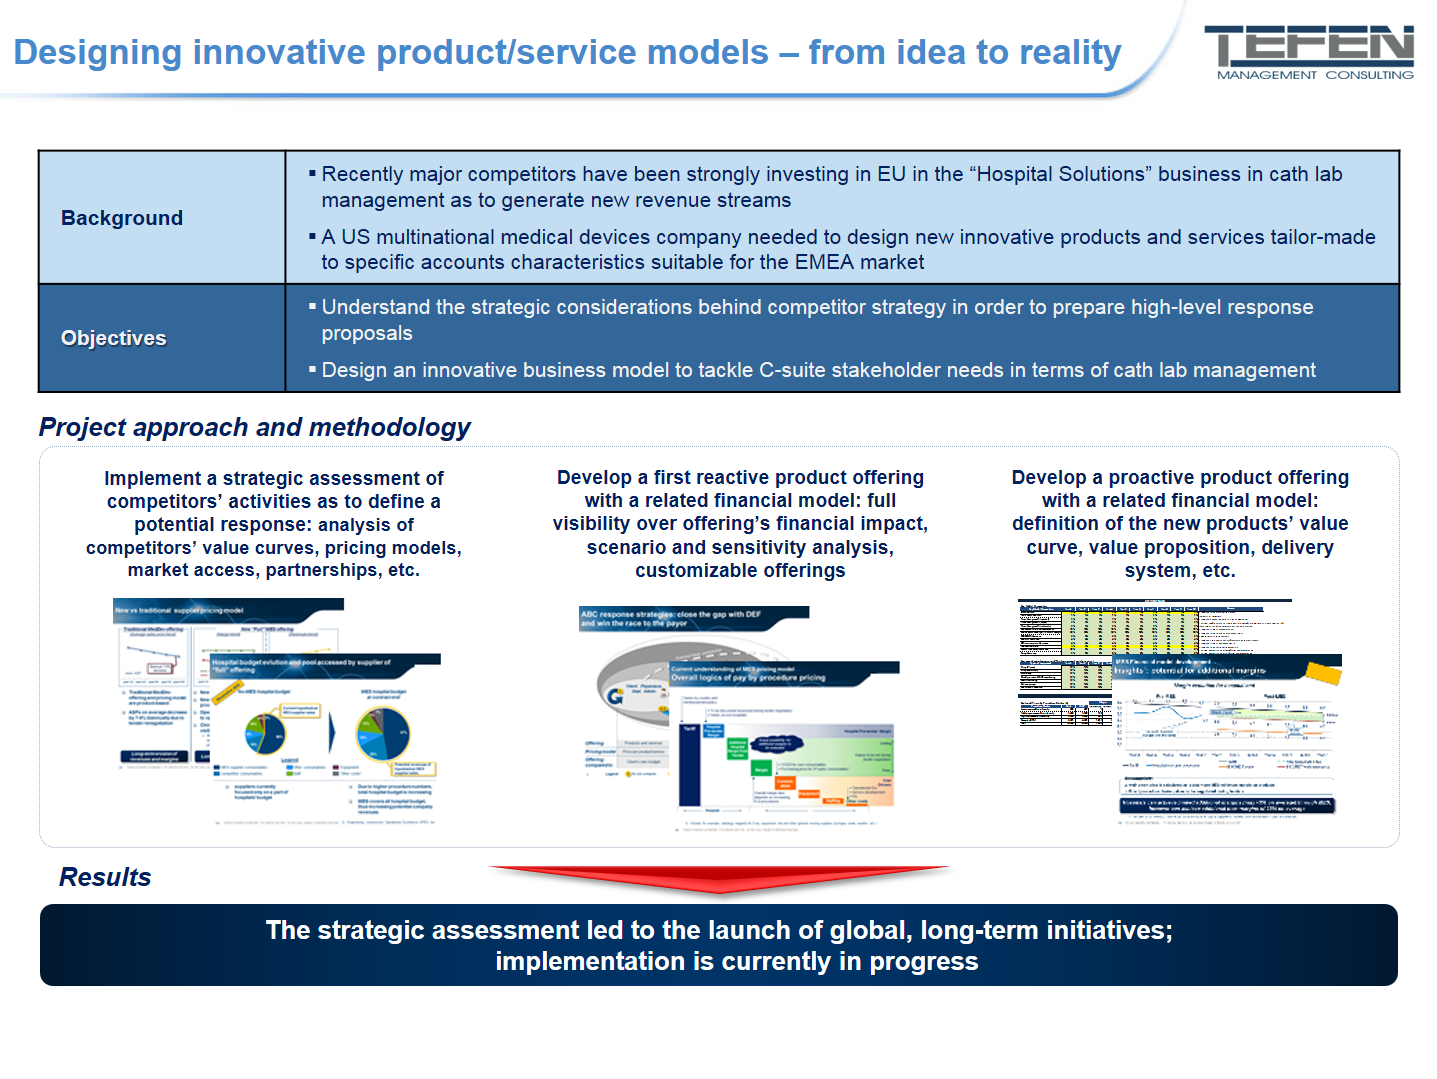 Designing innovative product/service models - Case study's summary